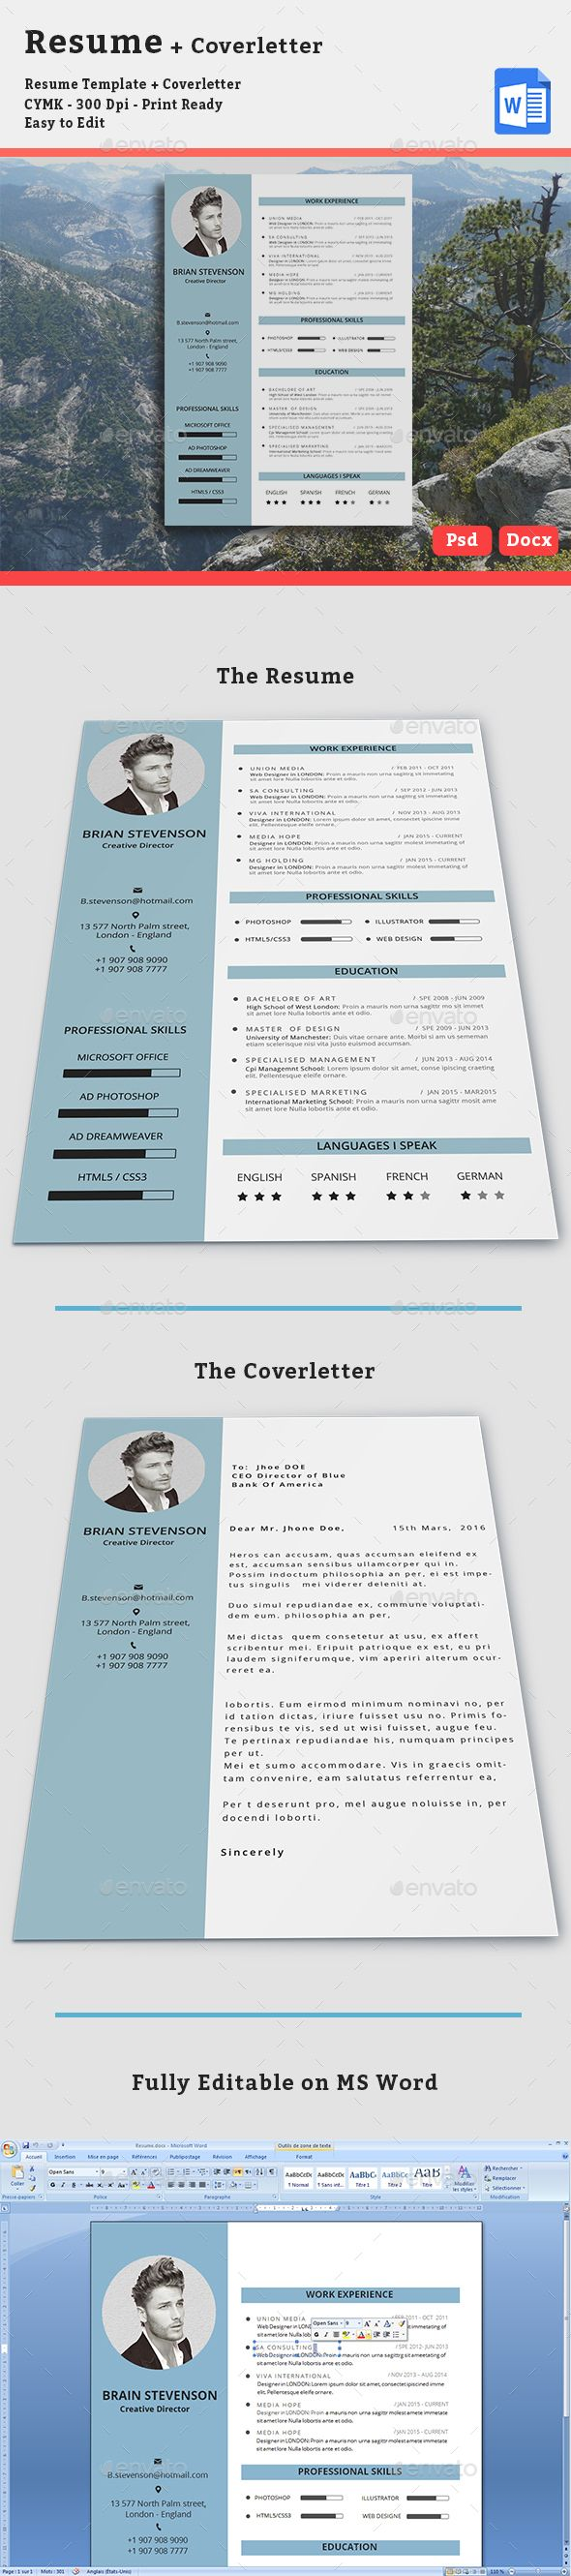 Best Cv Structure Ideas On Pinterest Resume Ideas Cv Format - Create perfect cv resume